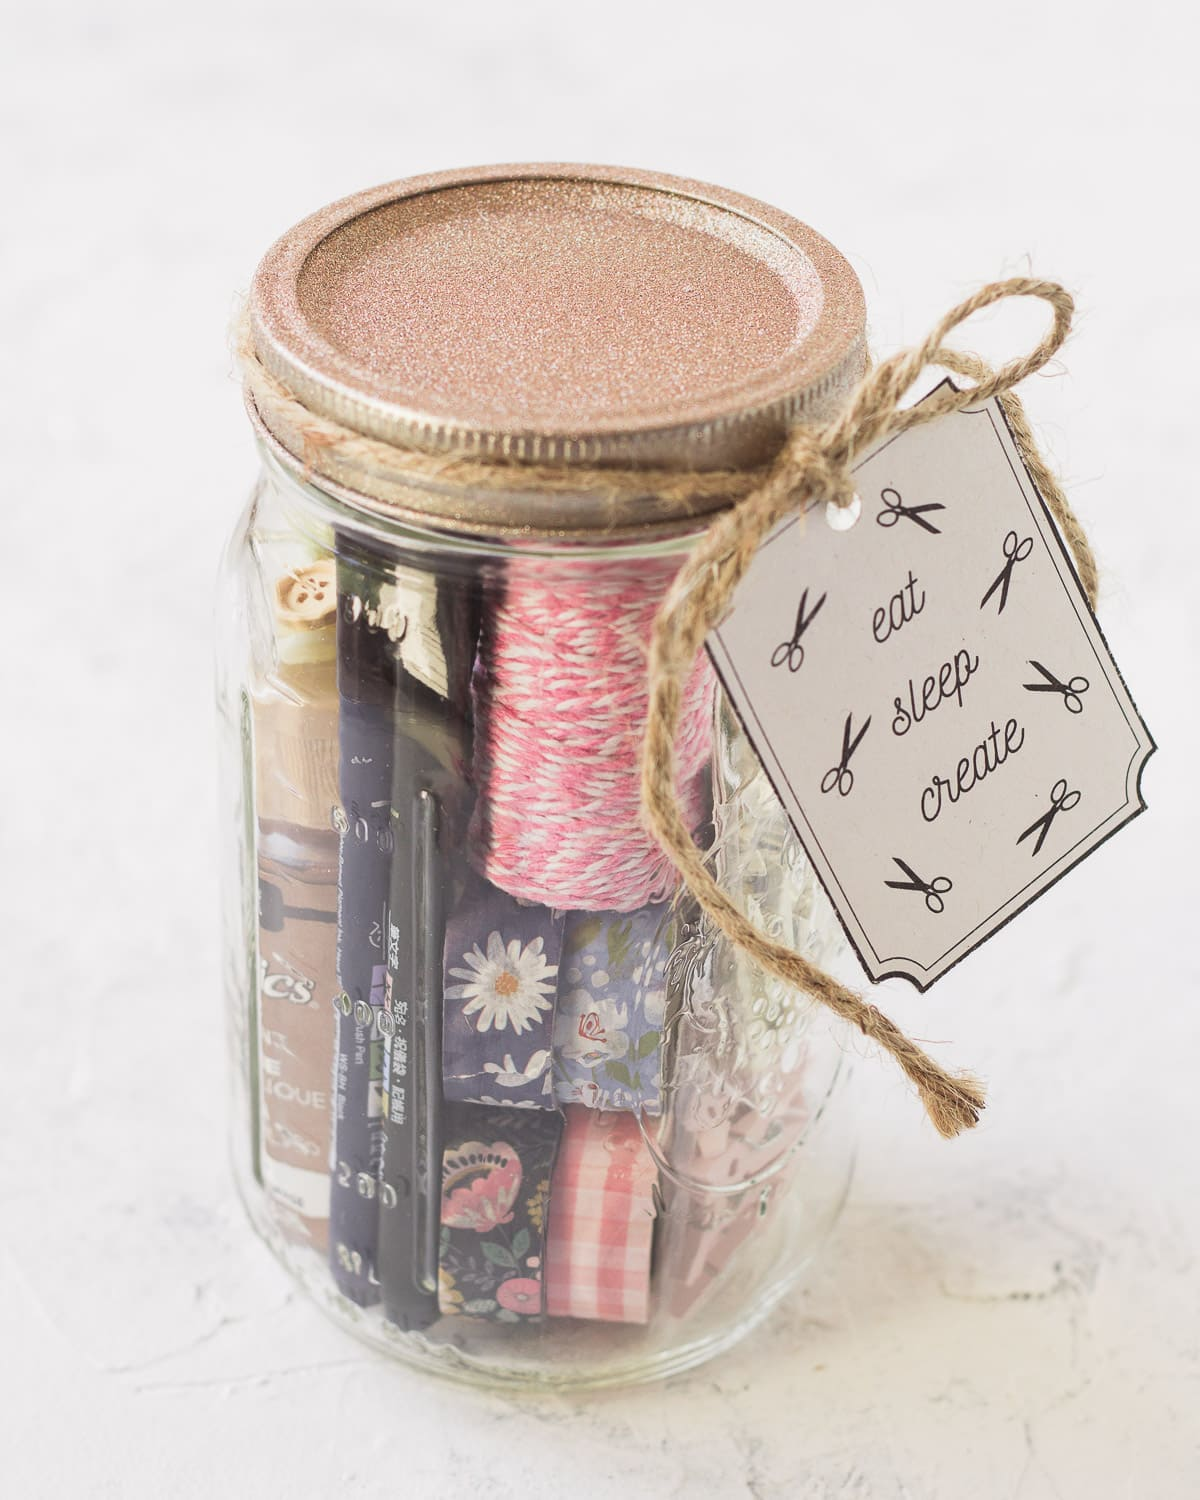 Washi tape and colorful twine in a mason jar with a gift tag.